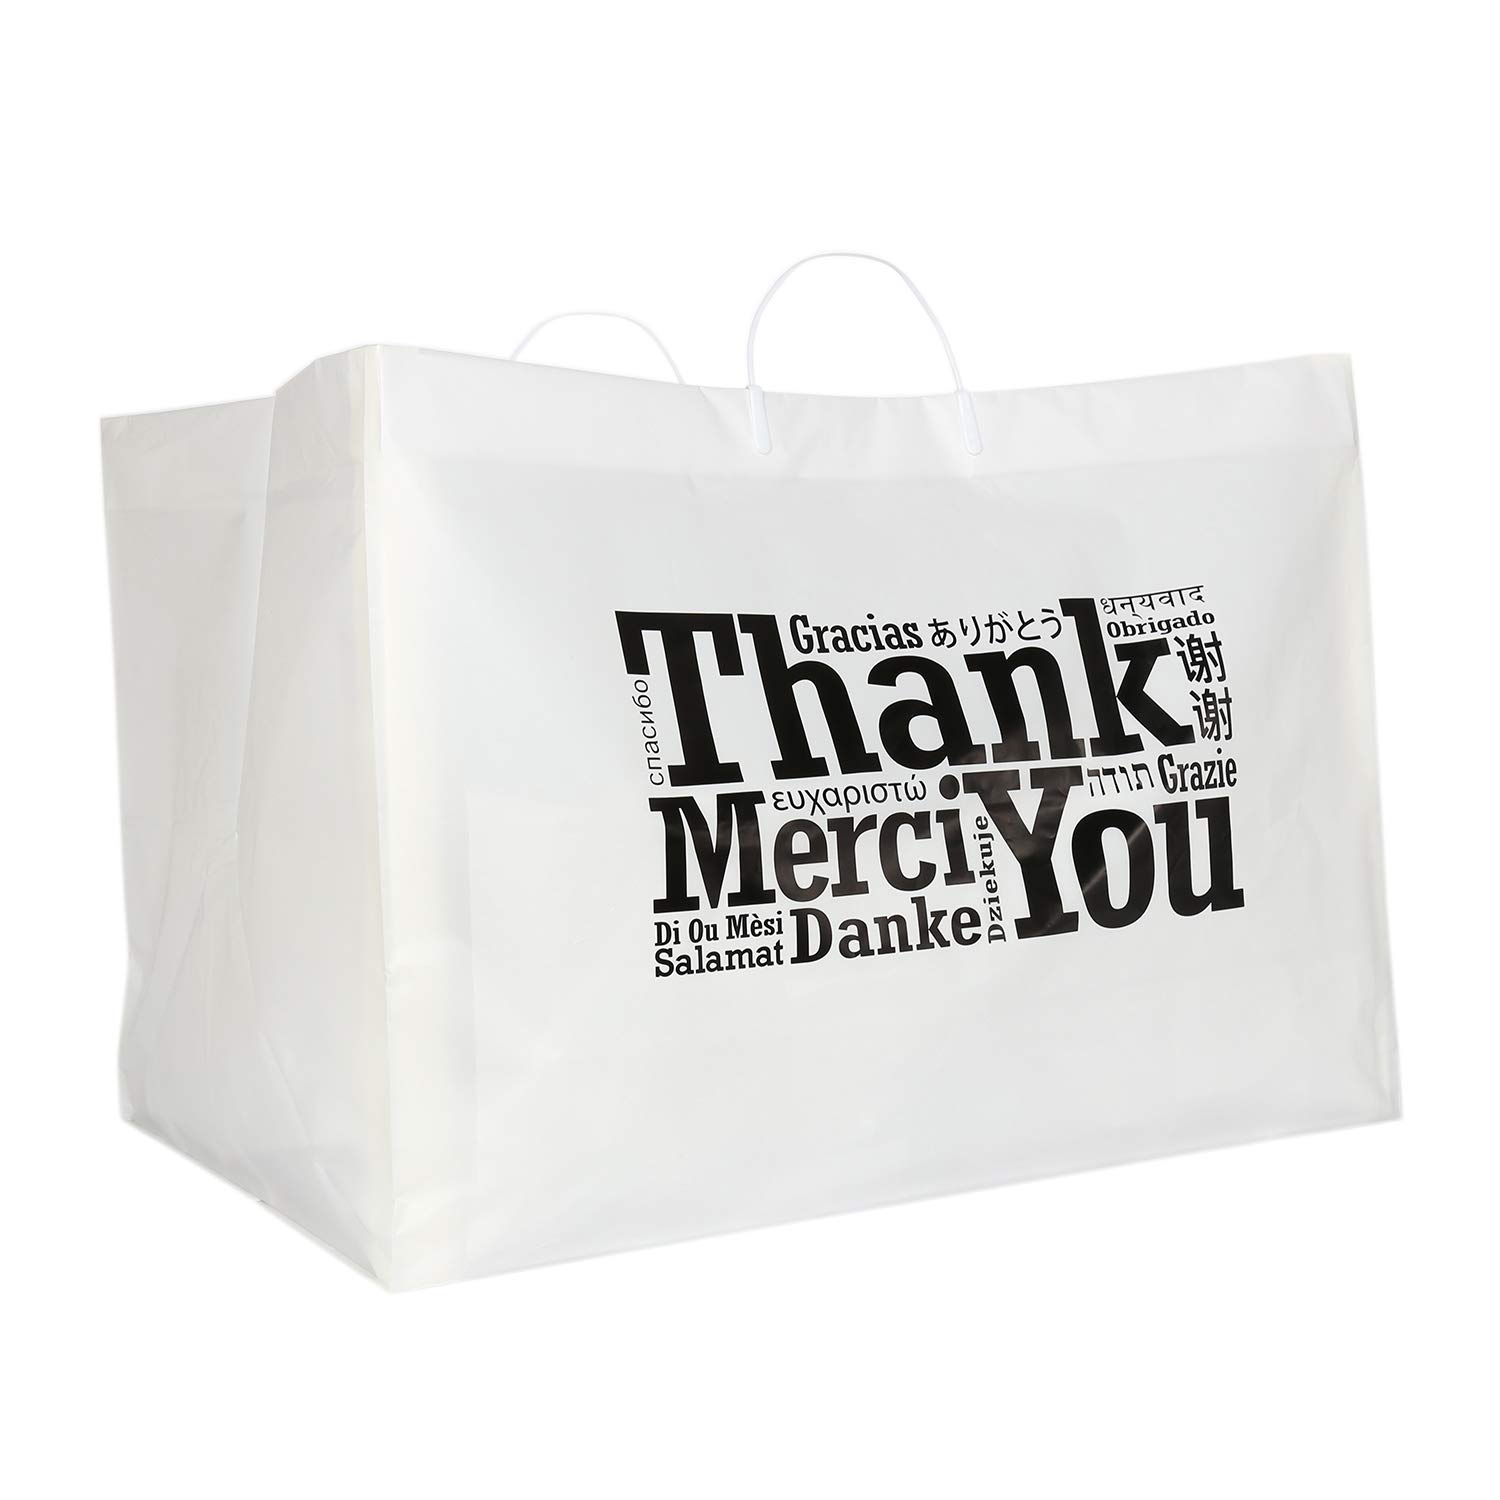 Royal Recyclable Plastic Shopping Bags with Rigid Handles, 22'' x 14'' x 15'', Multilingual''Thank You'' Design, Case of 50